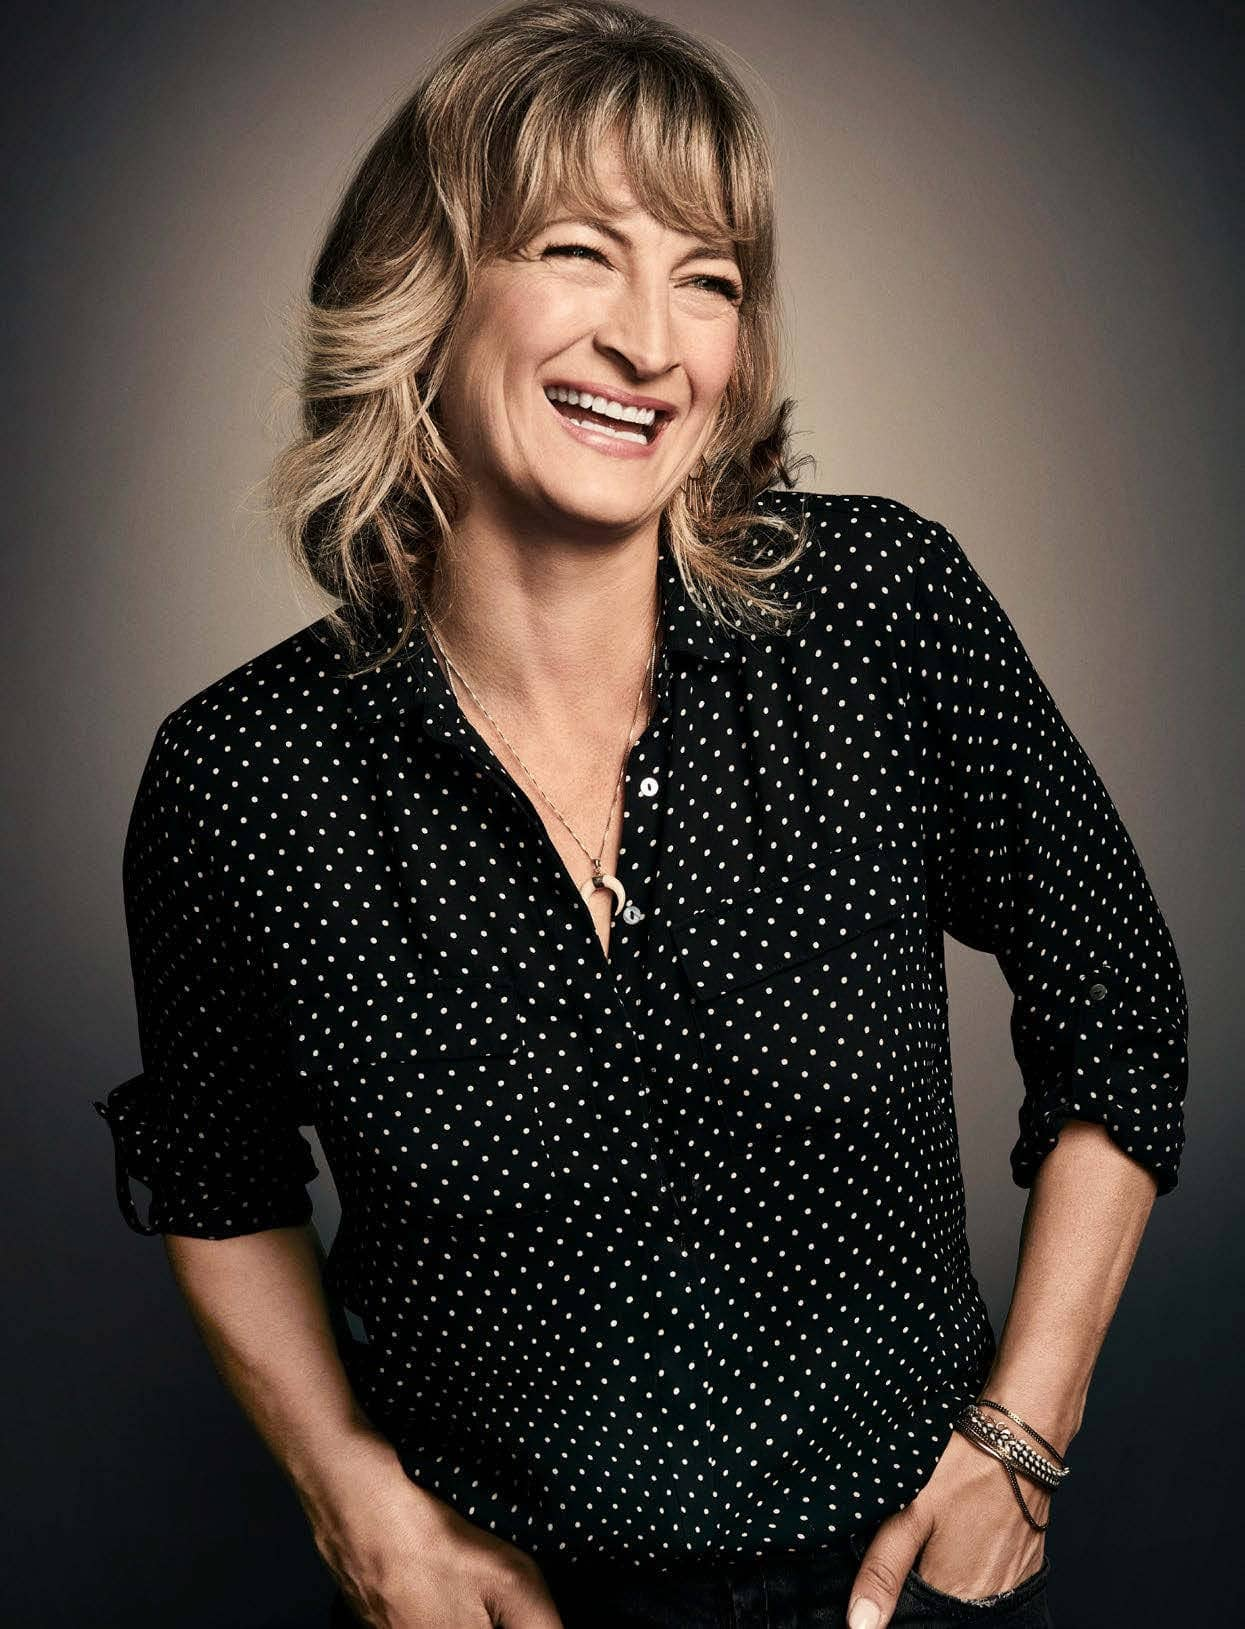 Zoe Bell - Hollywood's Kiwi Secret Weapon